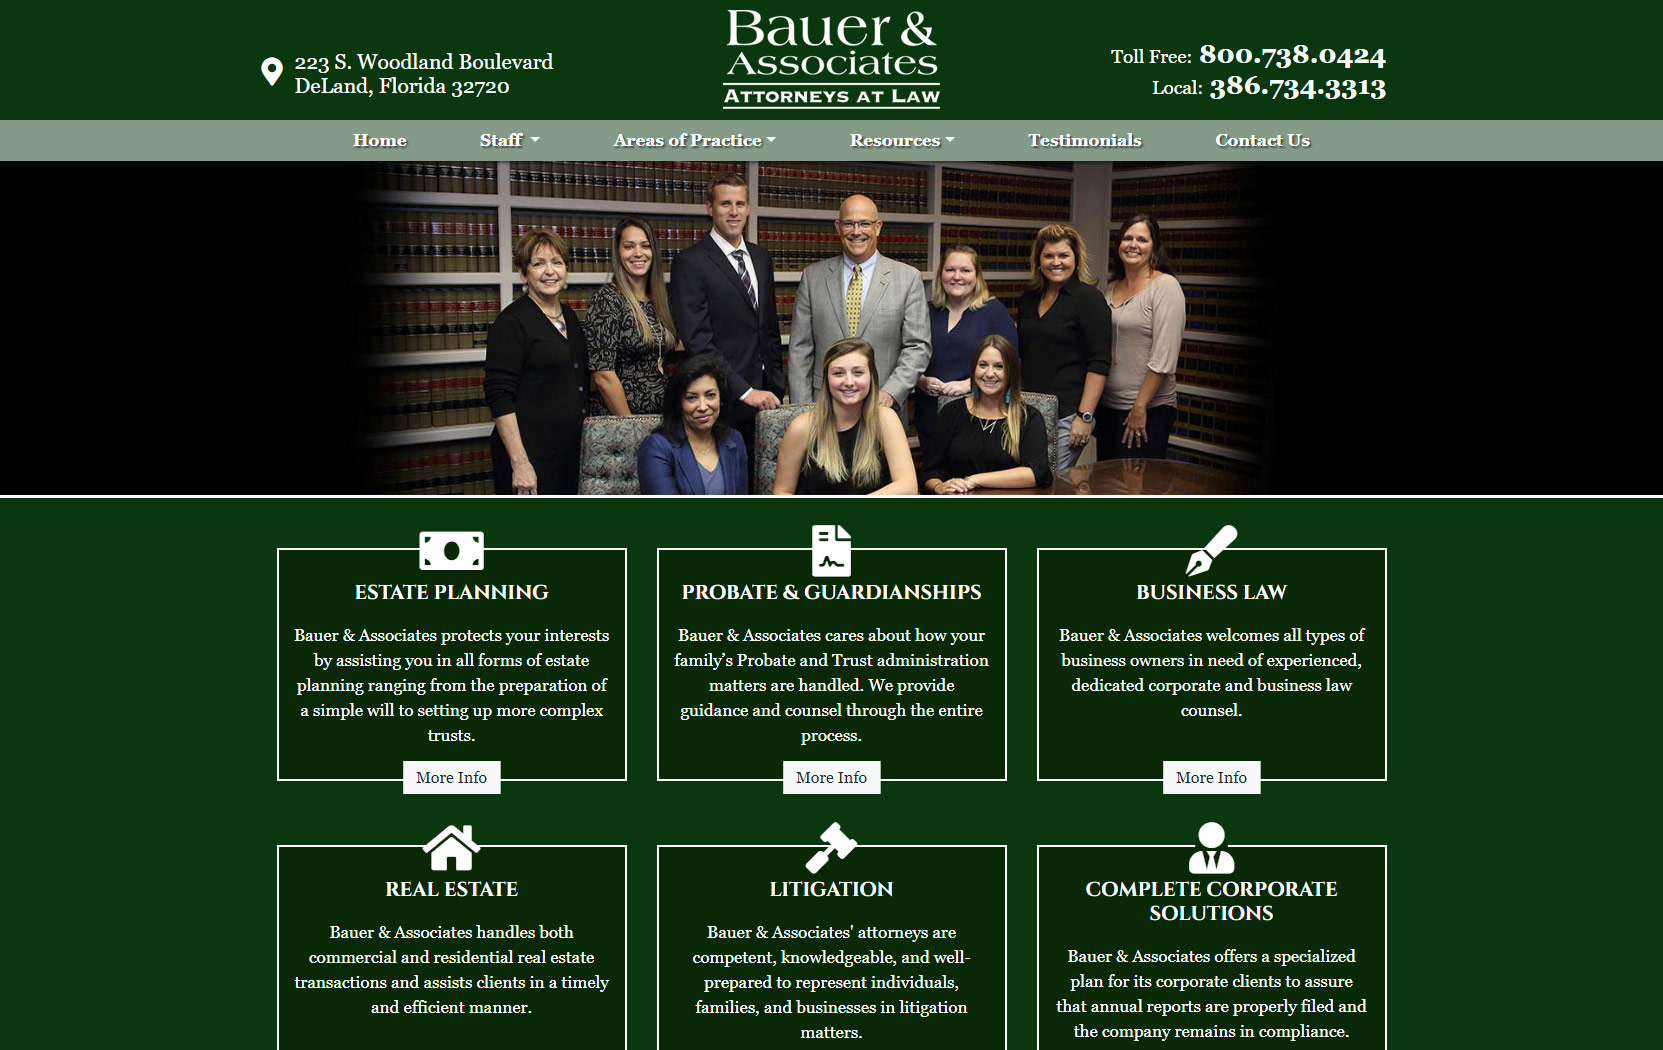 Bauer & Associates Attorneys at Law